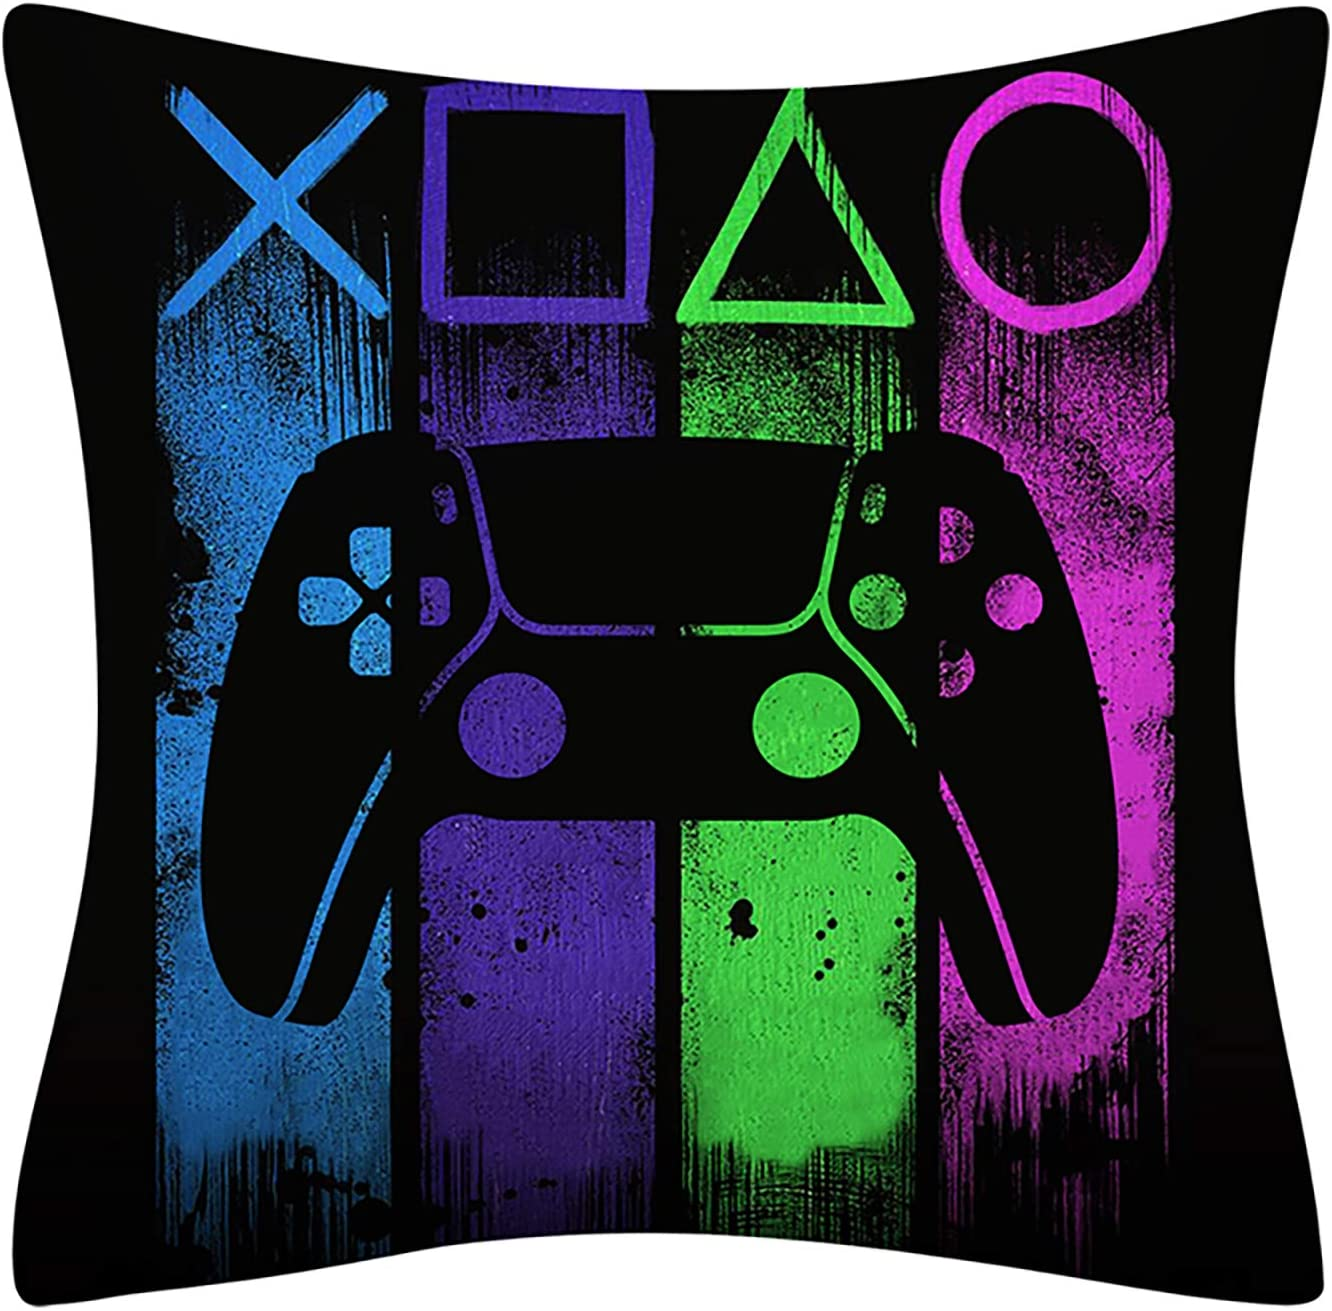 LAKYTION Gamer Pillow Case Game Controller Decorative Square Throw Pillow Cover Cushion Cover for Home Sofa Bedroom Office Car 18